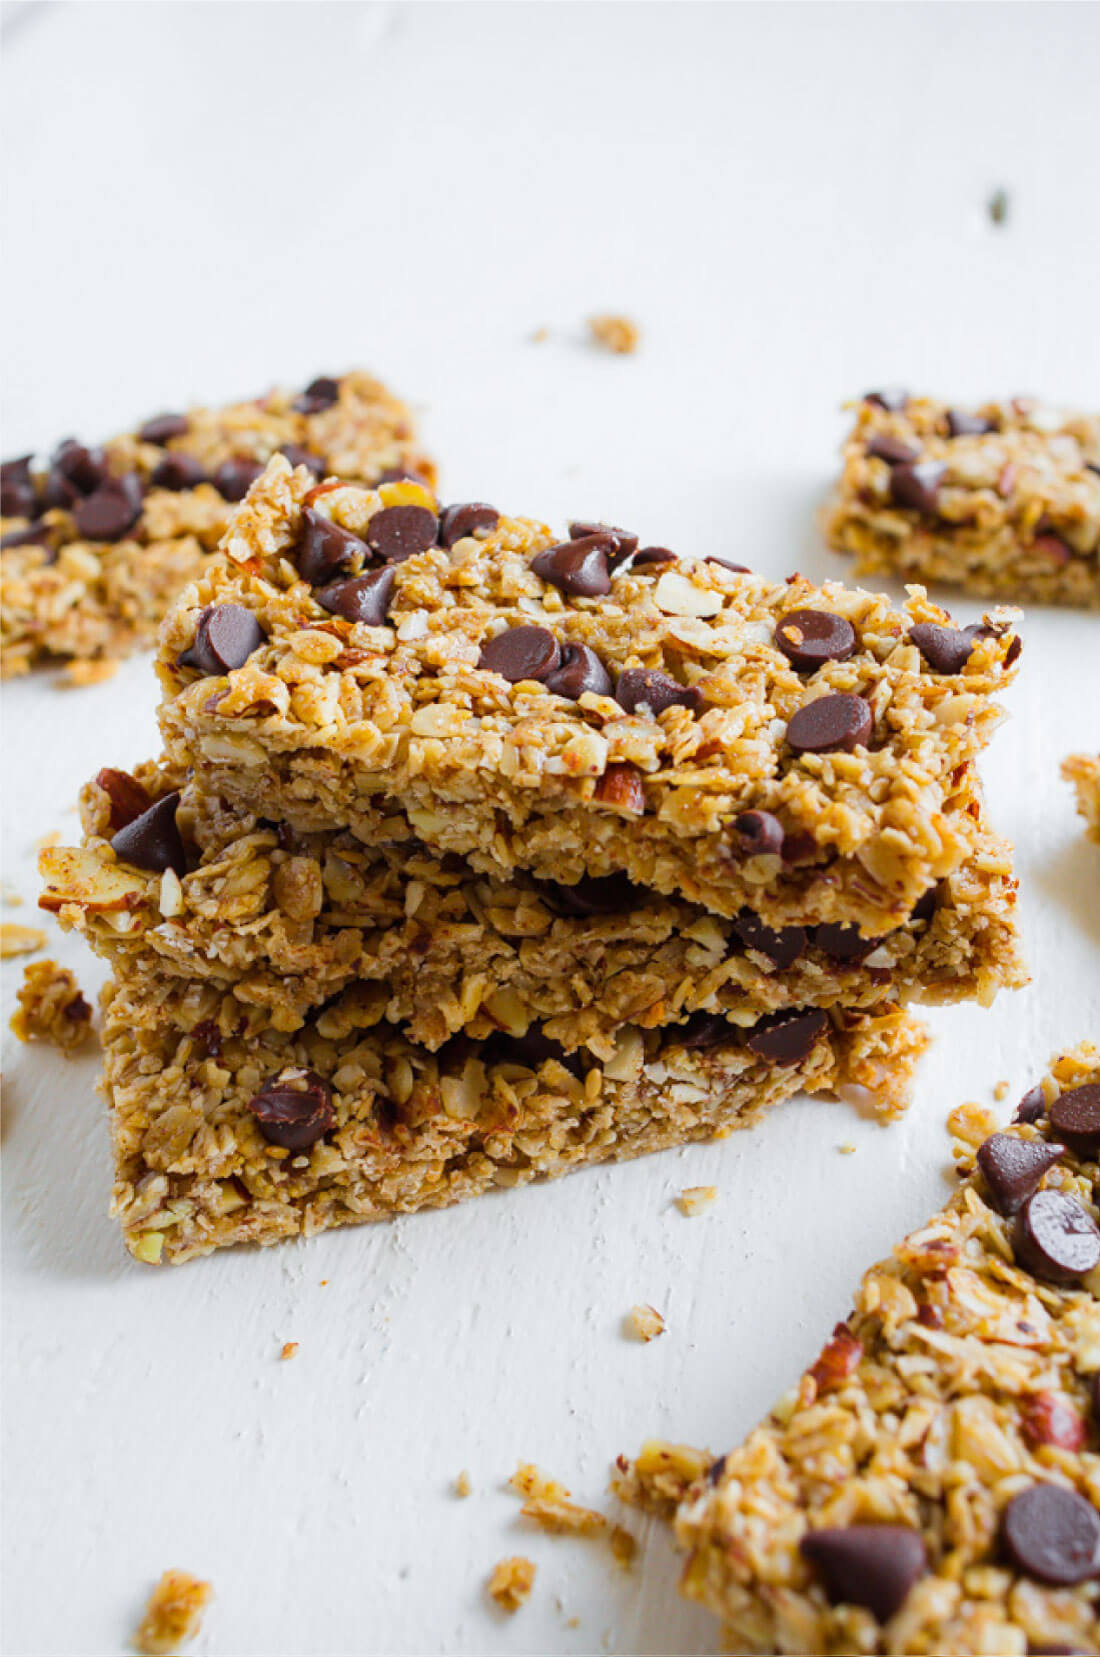 Homemade Granola Bars Recipe -way better than the store bought version. These taste amazing!